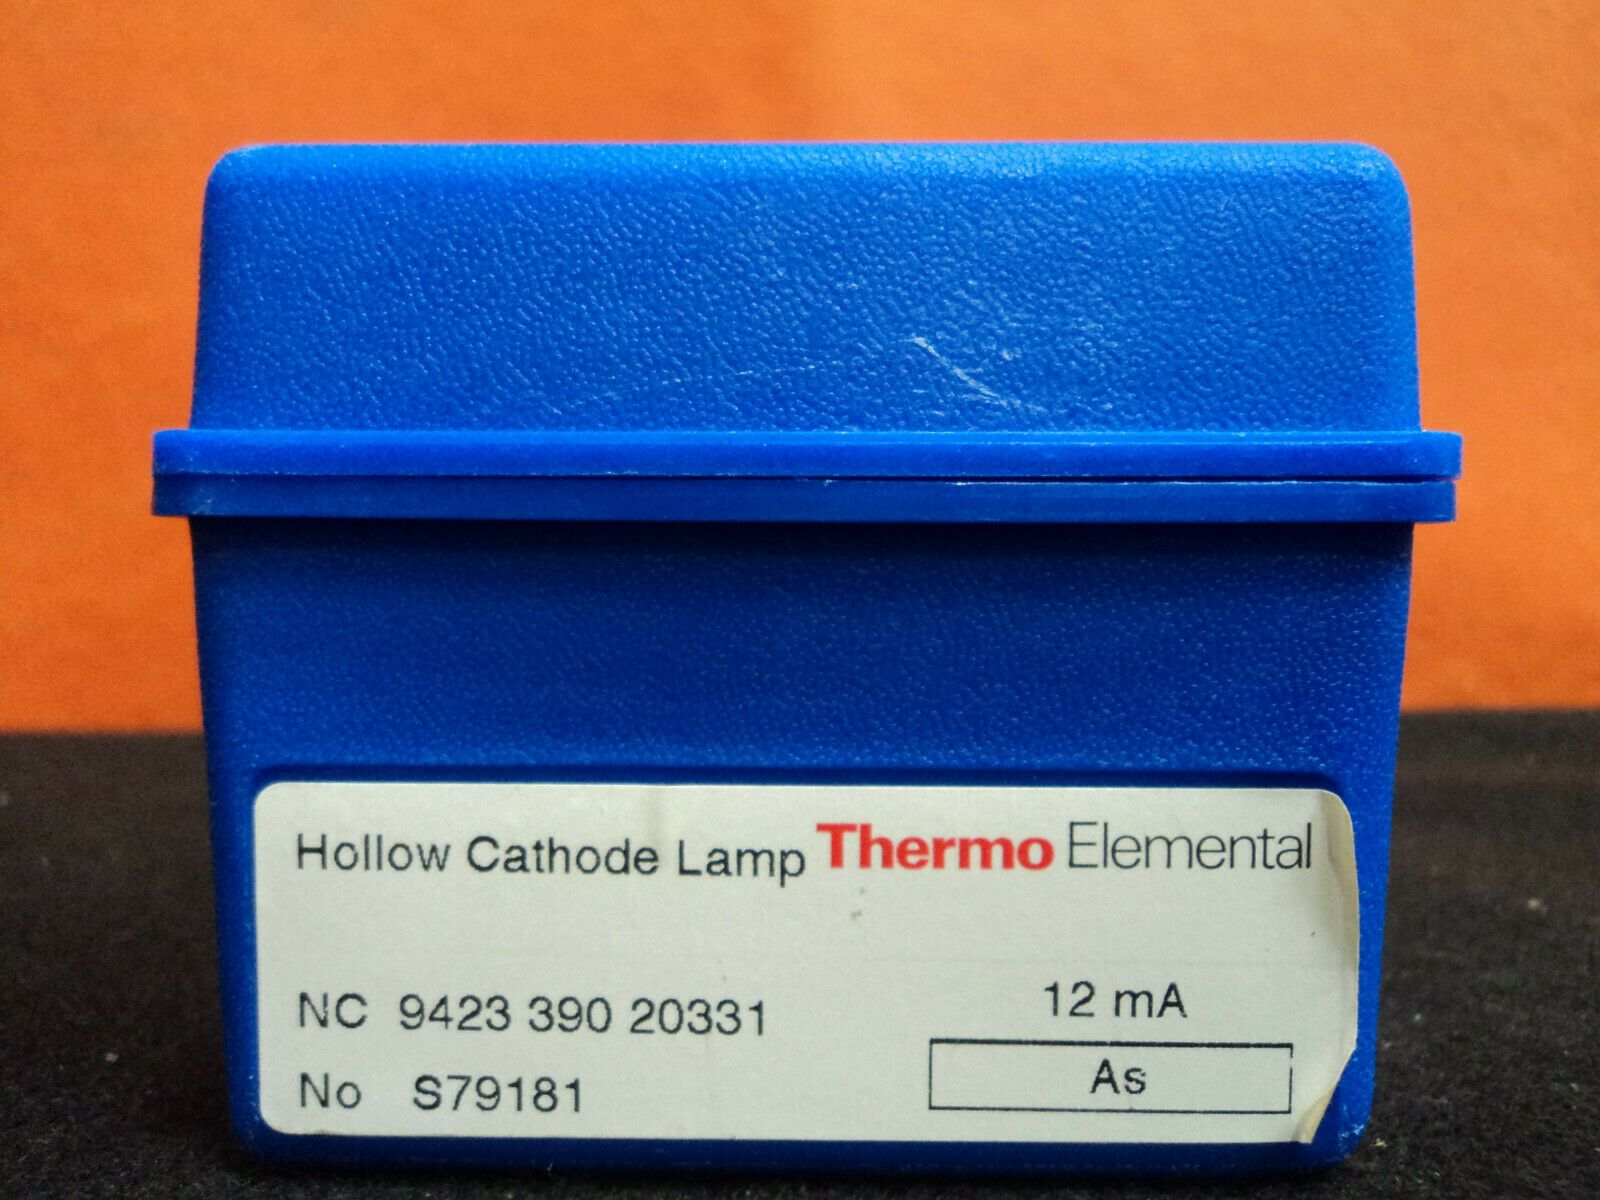 Thermo, TJA, Fisher Hollow Cathode Lamps As Mo Al